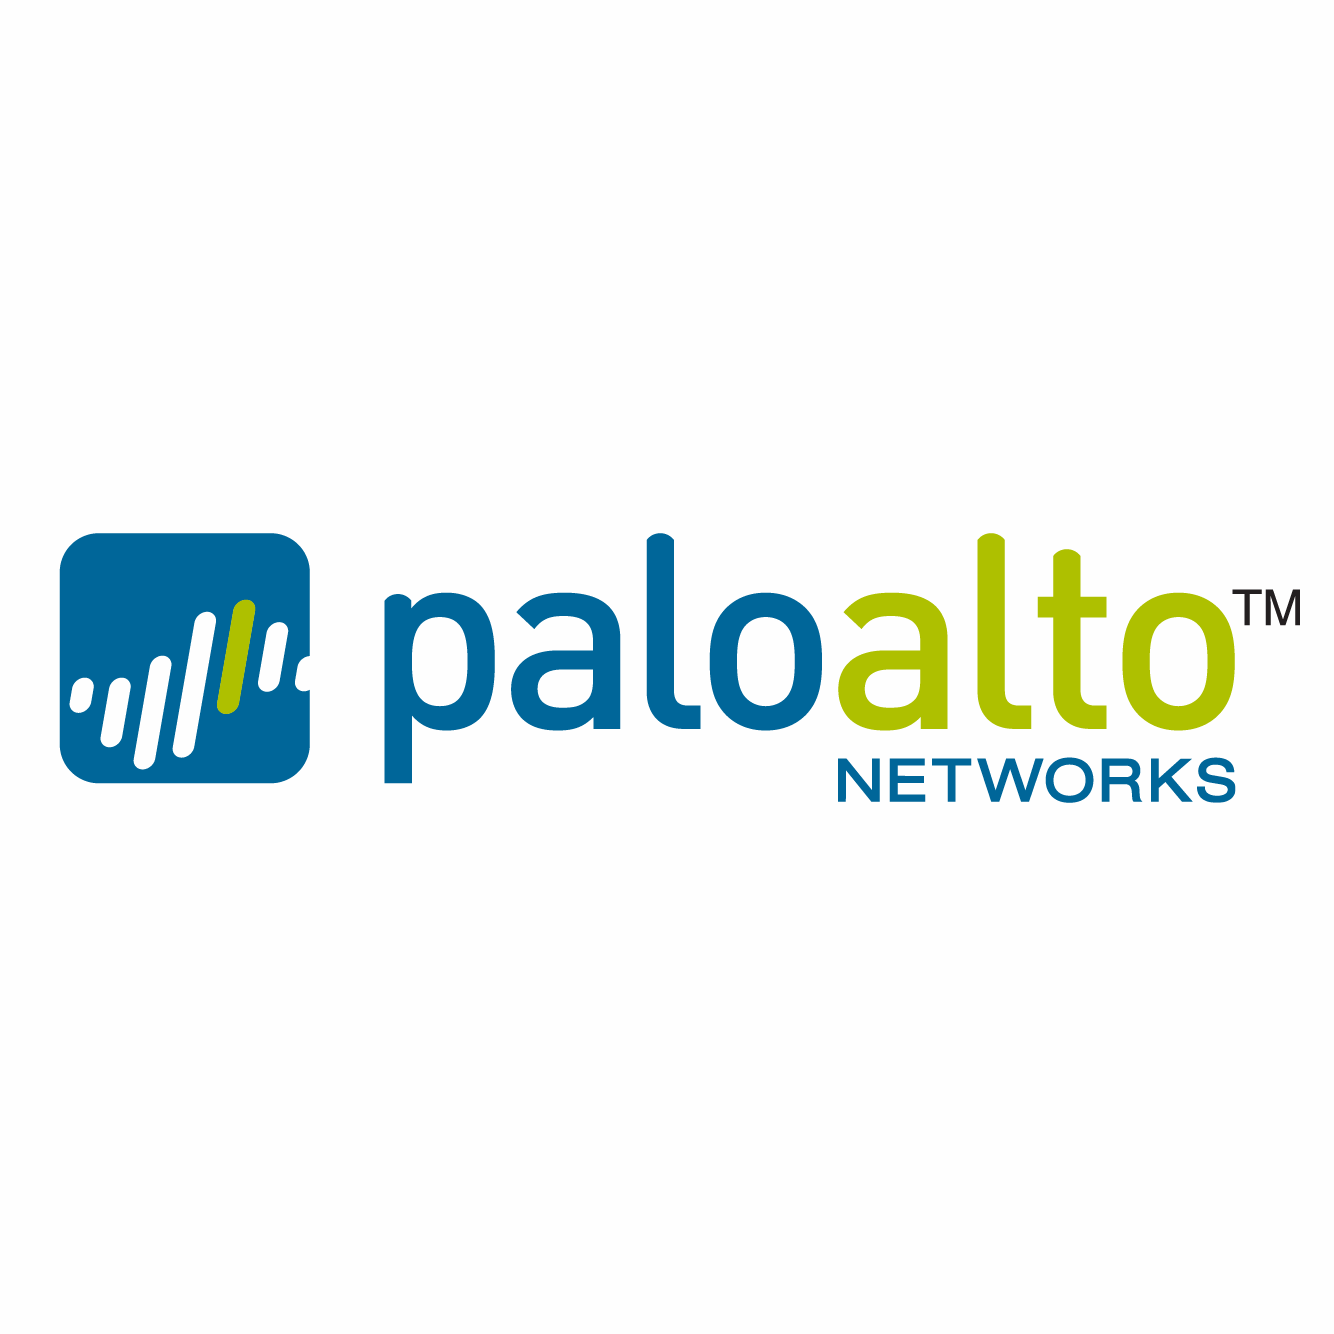 https://www.securetech.ae/wp-content/uploads/2019/02/15.PALOALTONWS.png